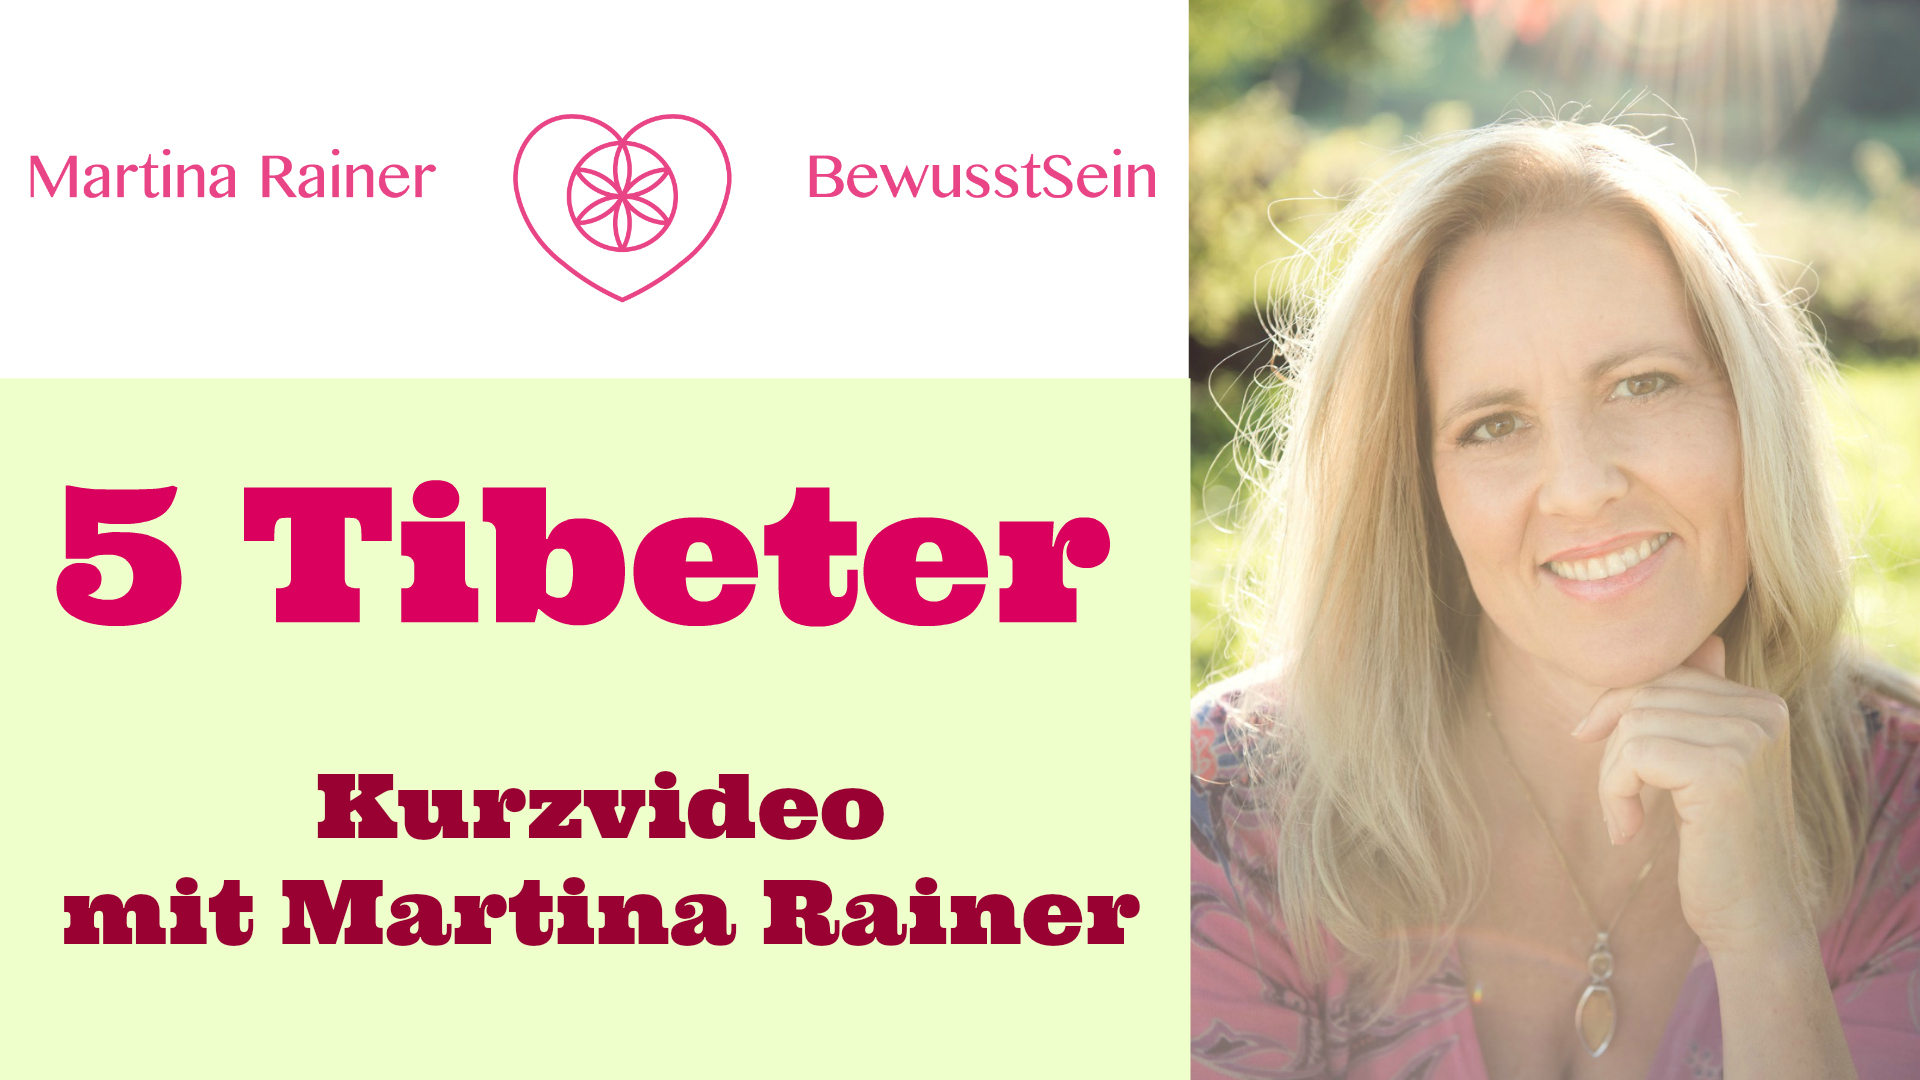 5Tibeter Martina Rainer